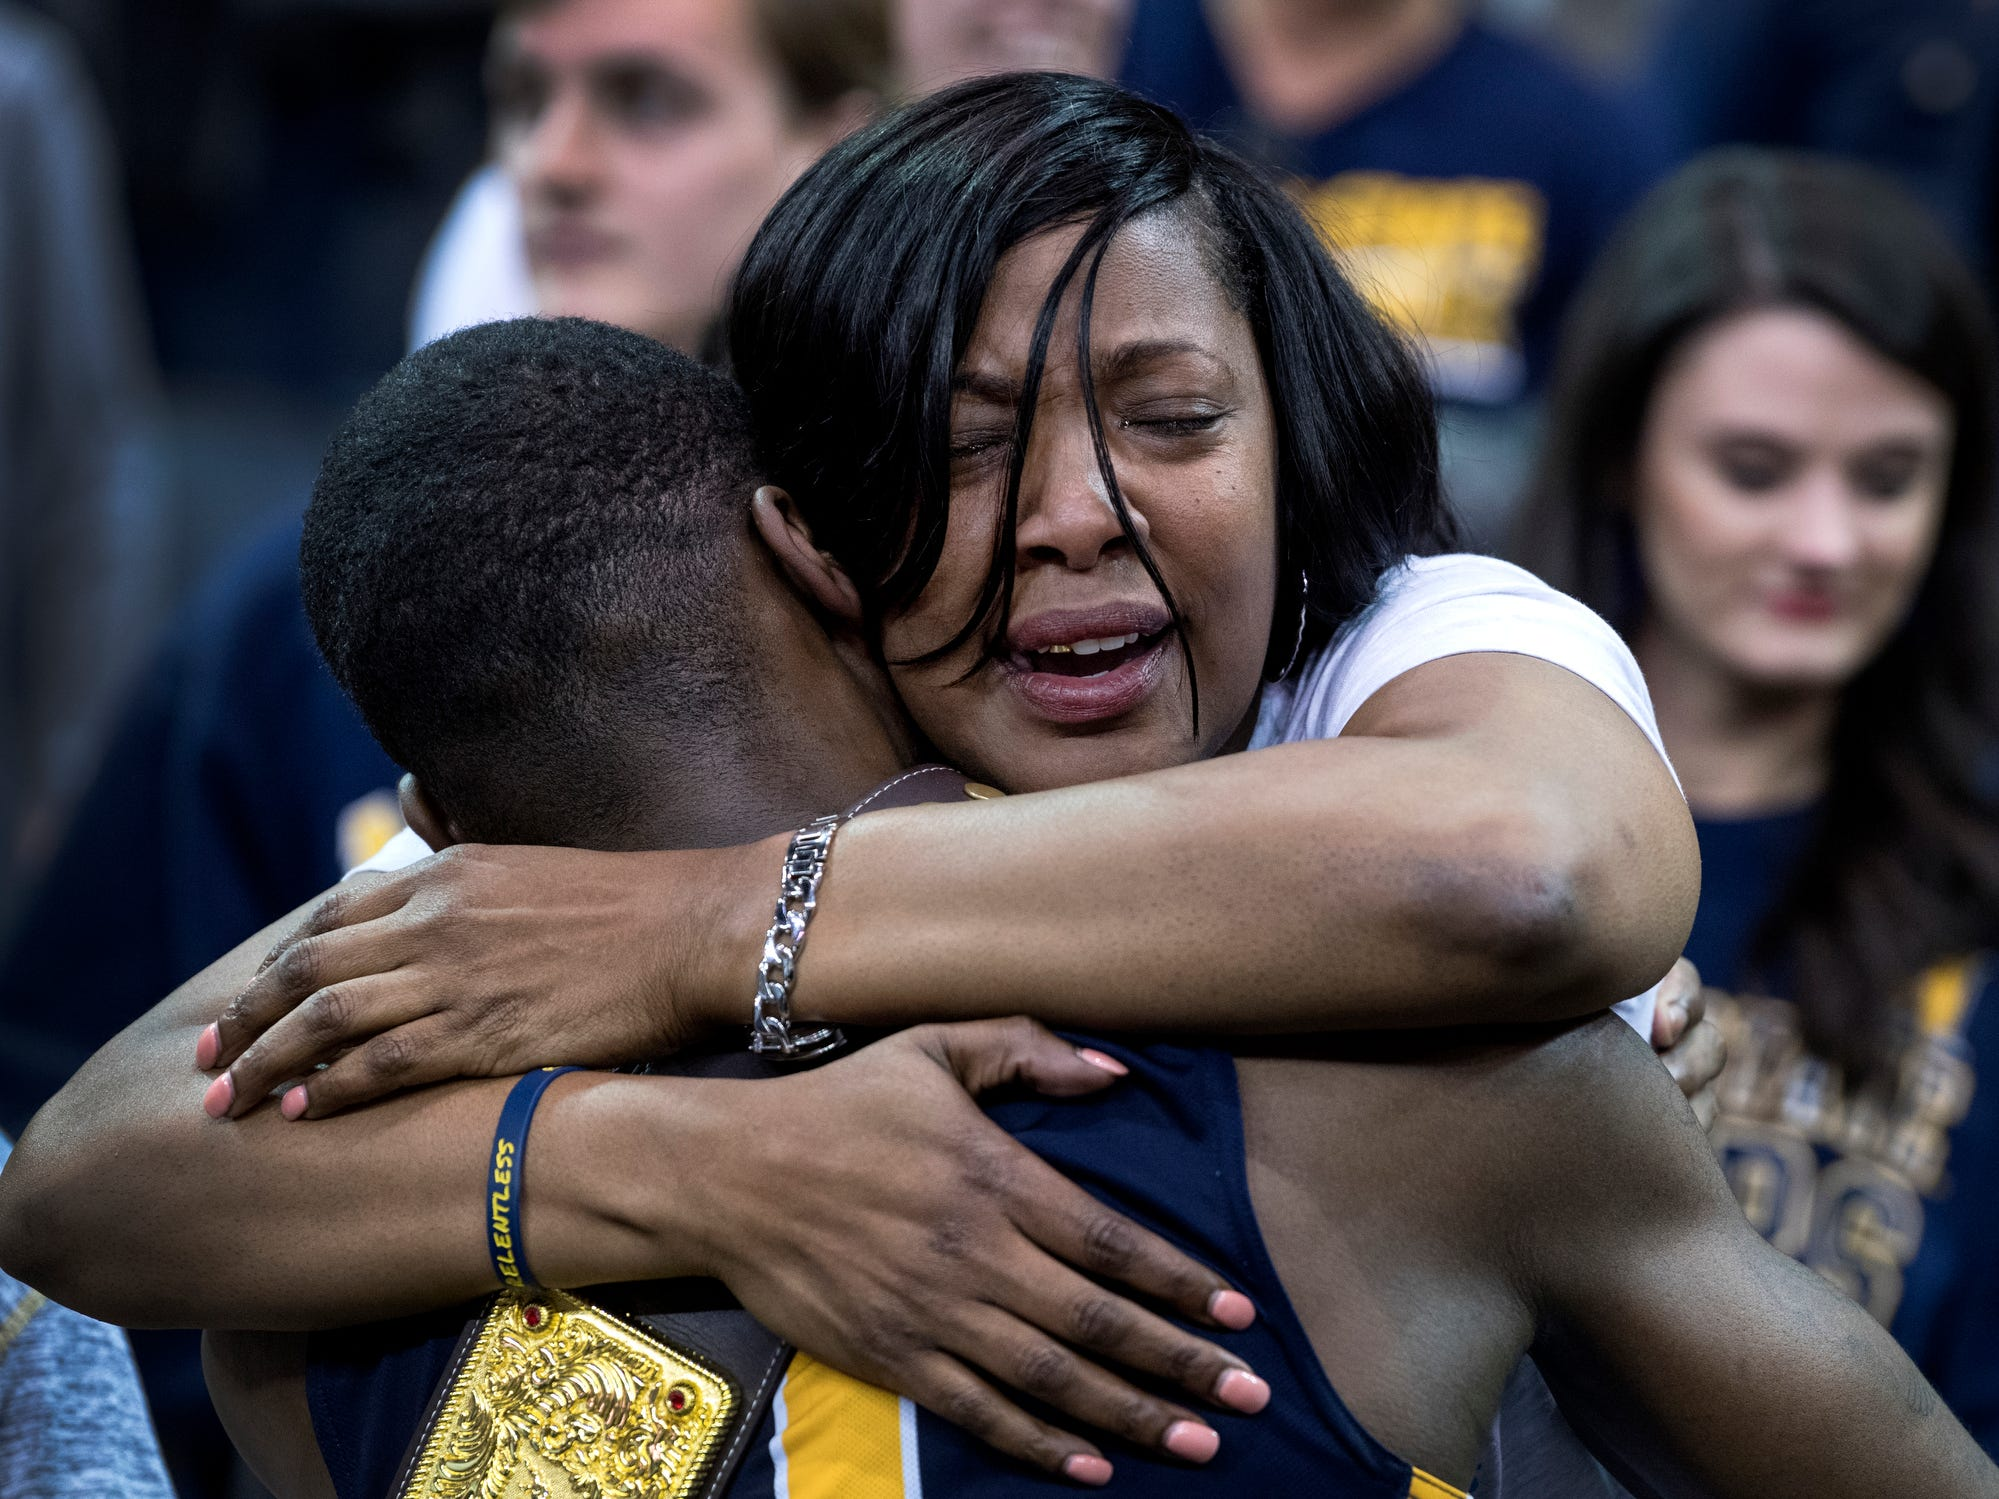 Murray State's Shaq Buchanan (11) receives a hug from his mother Stephanie Latiker following the Racers' Ohio Valley Conference men's championship win over the Belmont University Bruins at Ford Center in Evansville, Ind., Saturday, March 9, 2019. The Racers earned the OVC men's championship title after defeating the Bruins, 77-65.